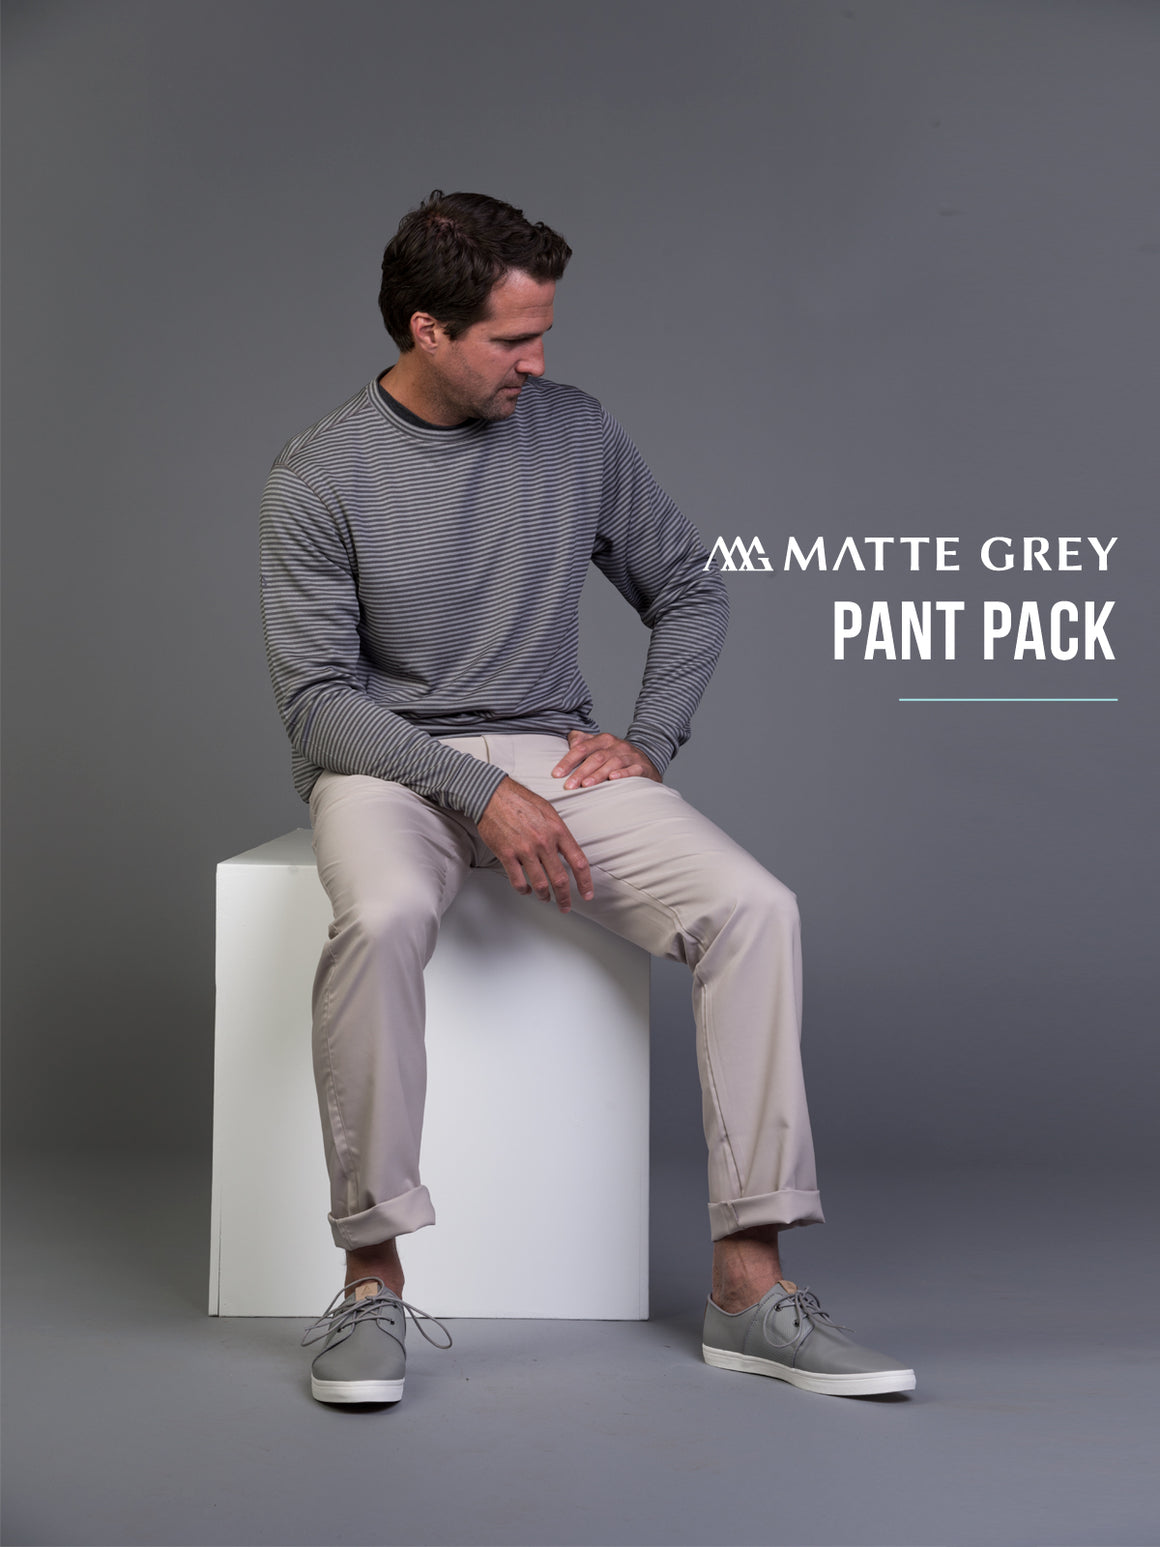 Matte Grey Mystery Pant Pack